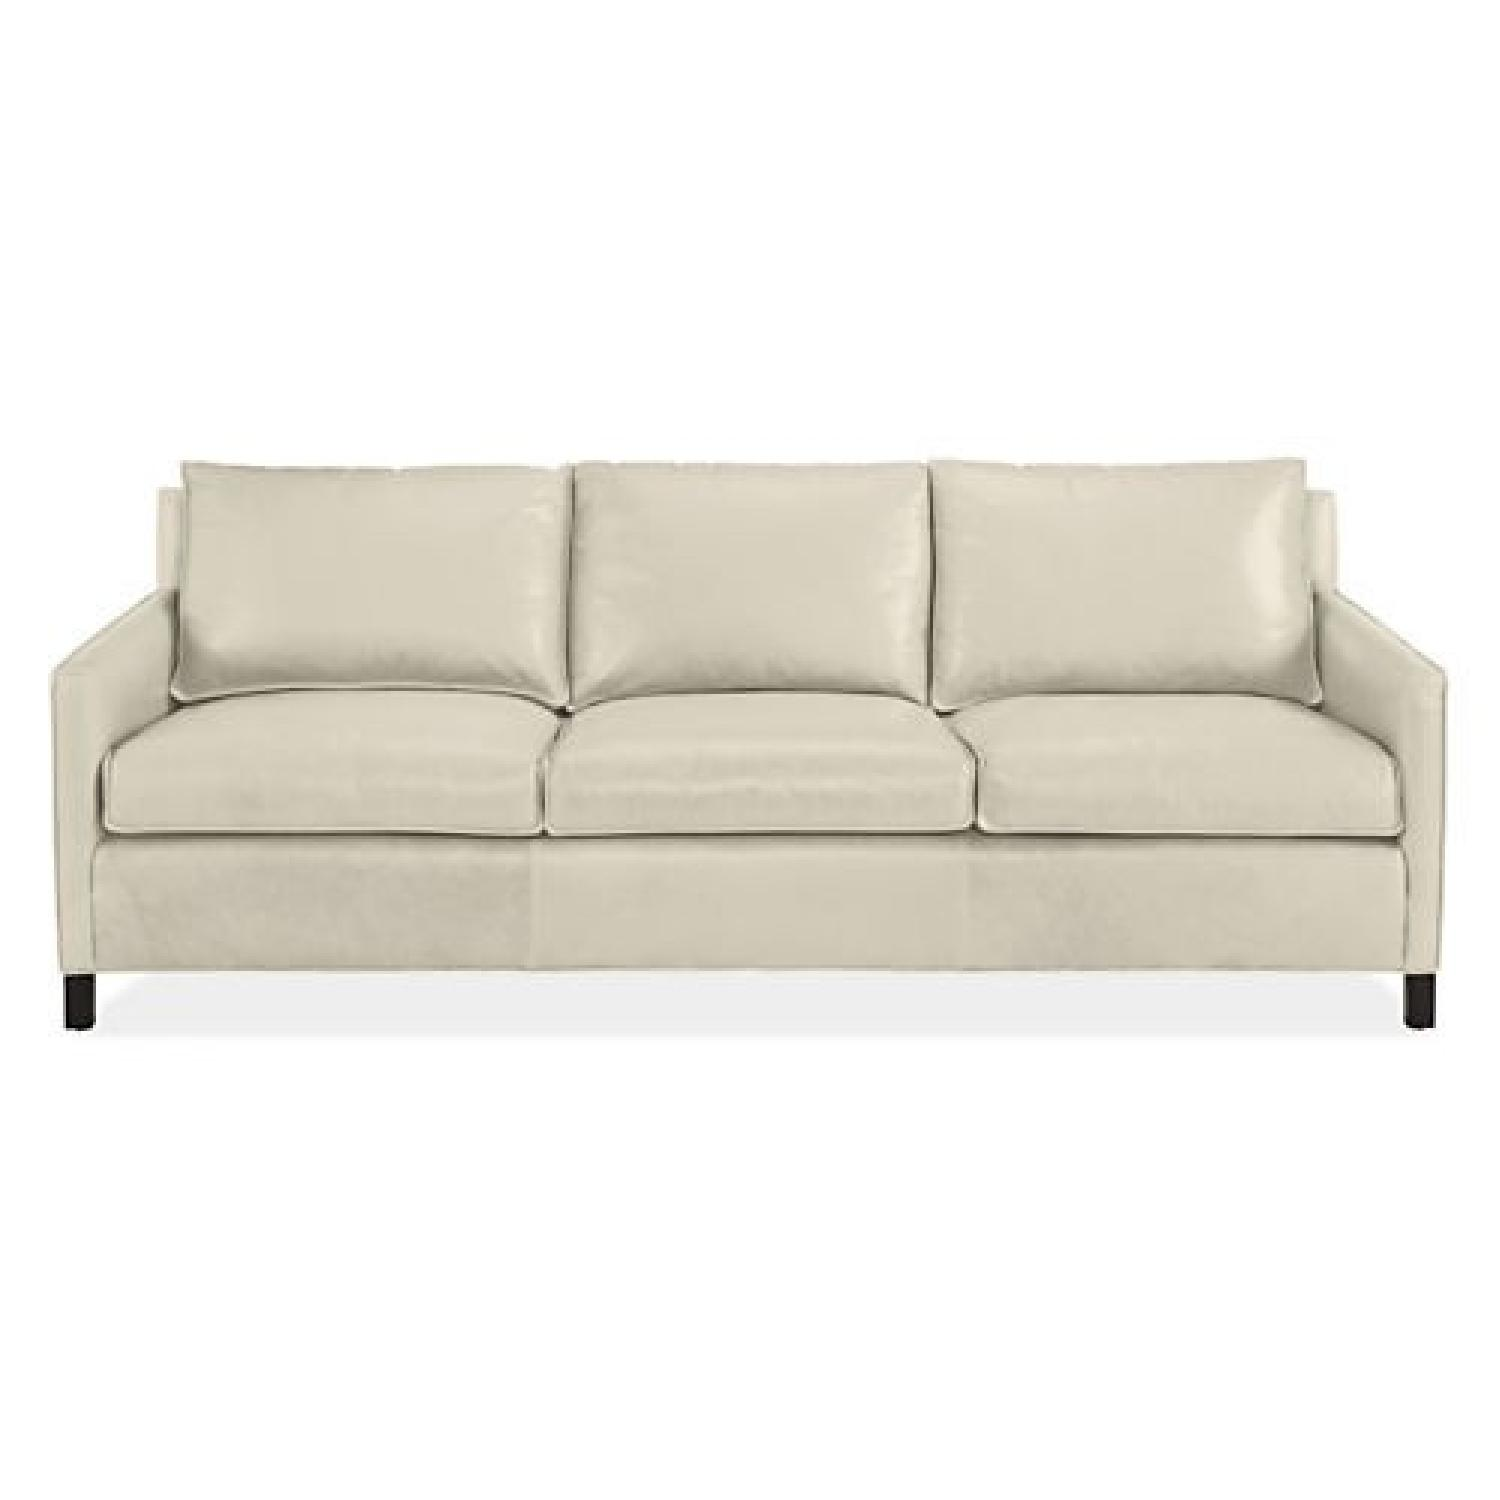 Room U0026 Board Off White Leather Sofa W/ 2 Pillows ...